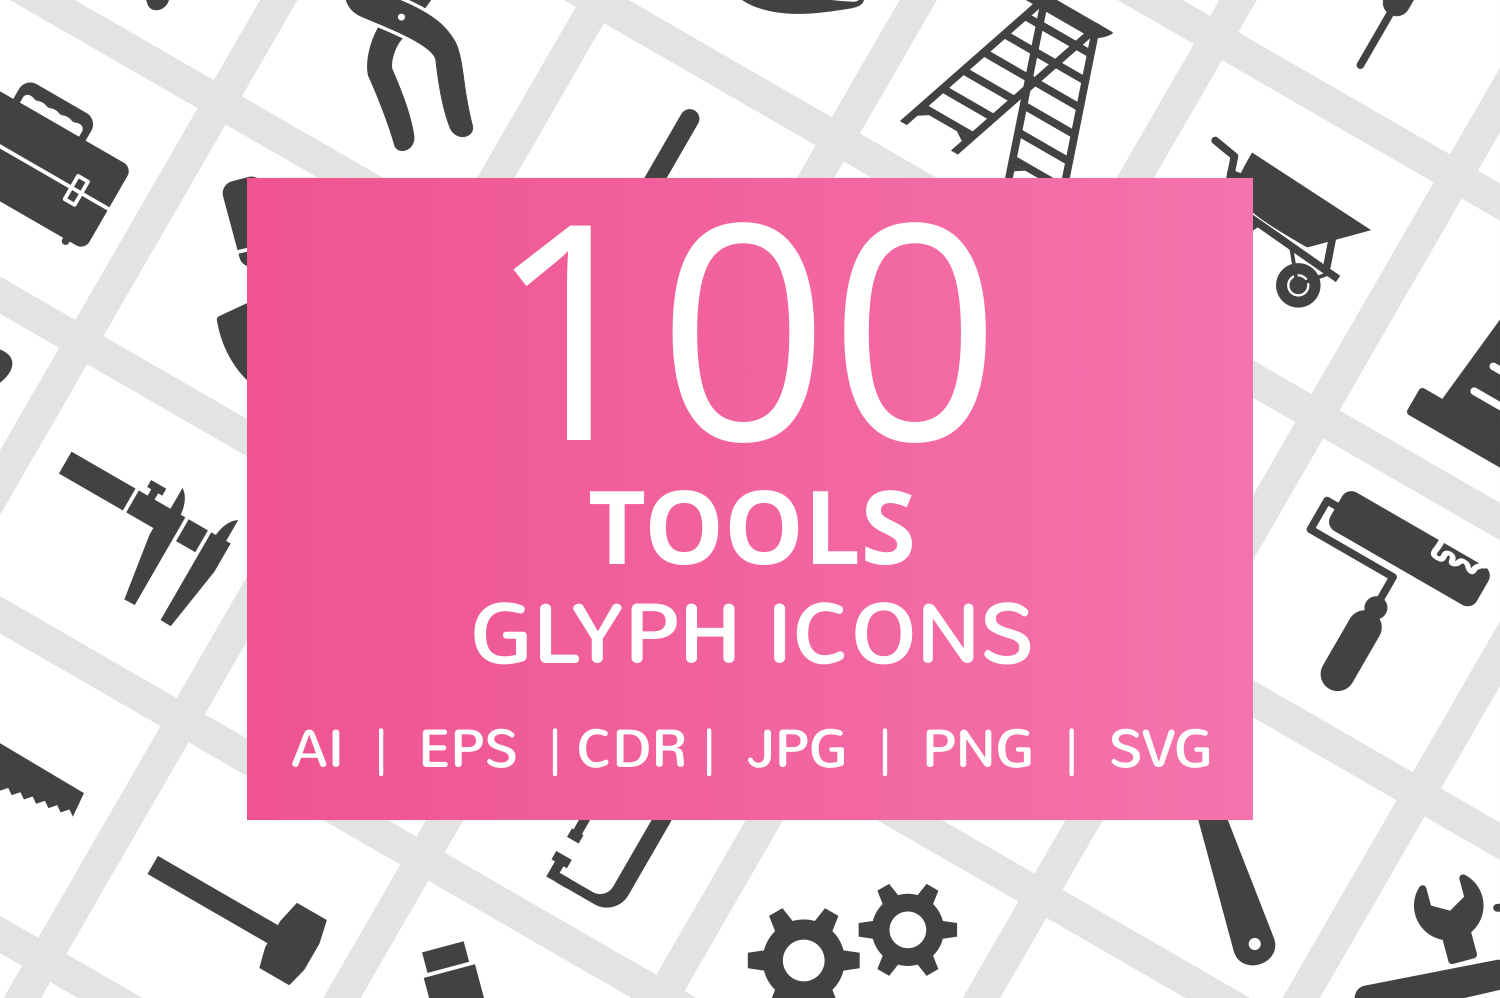 100 Tools Glyph Icons example image 1